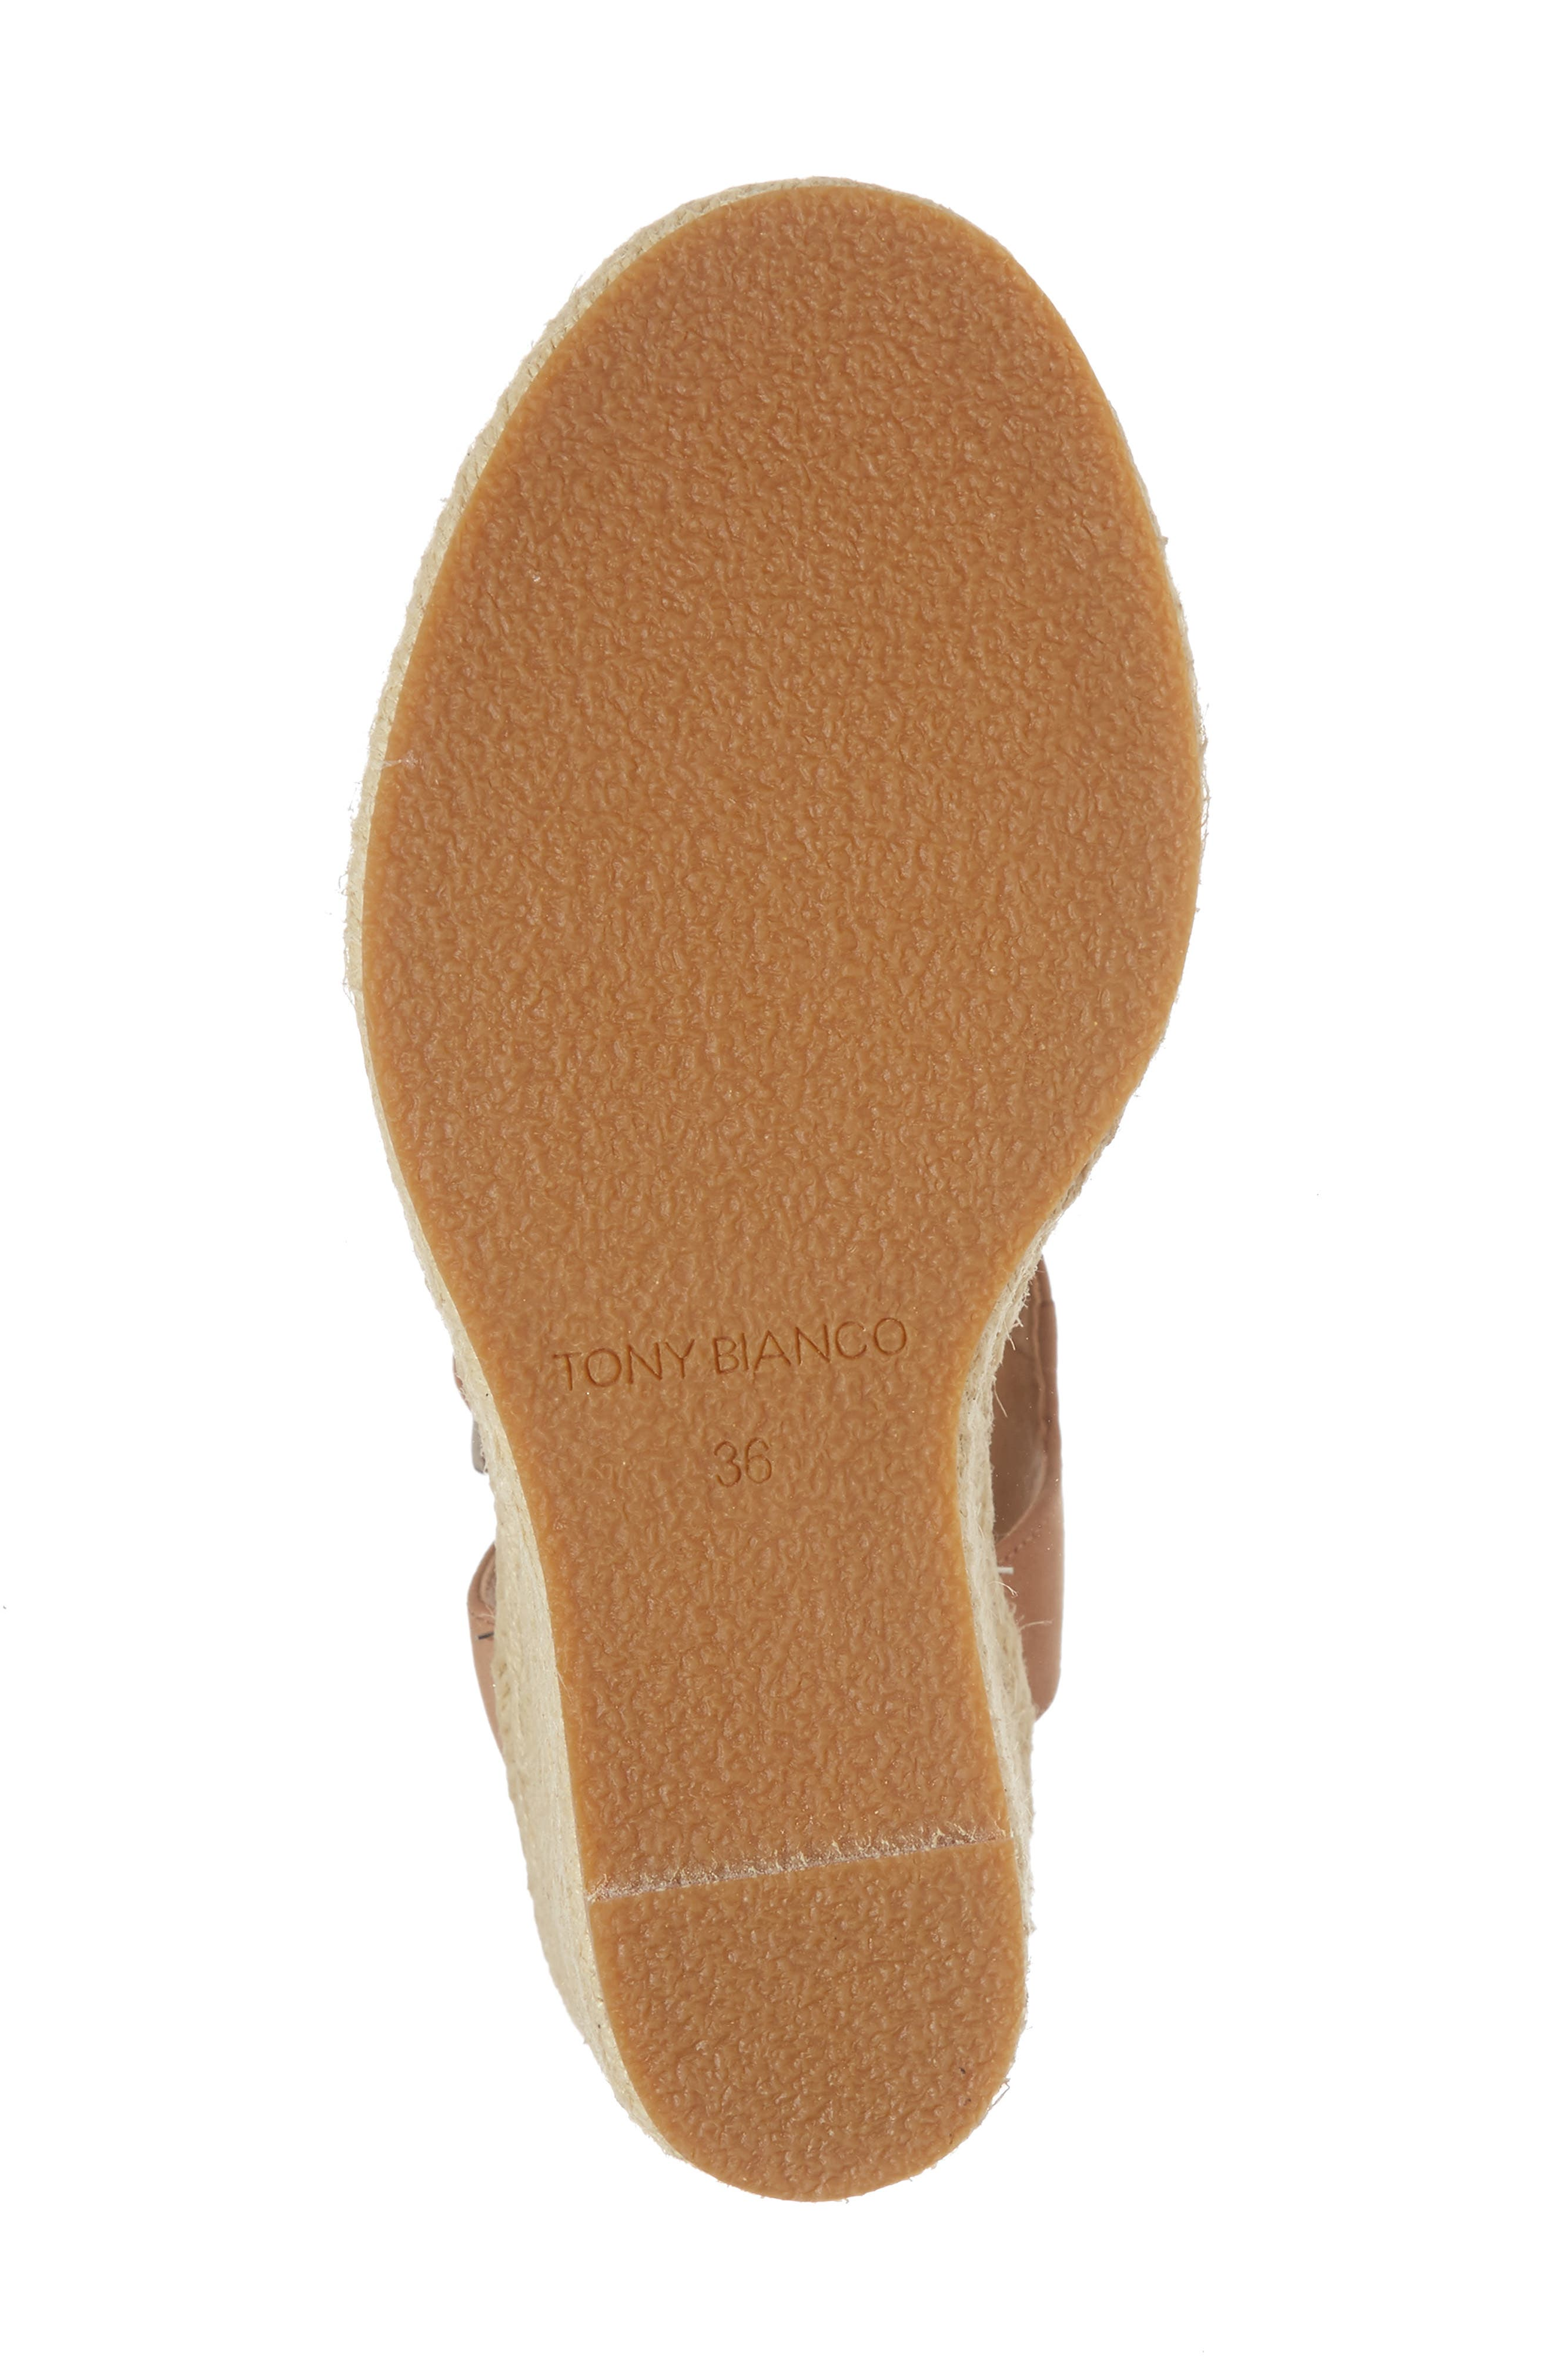 Boston Espadrille Wedge Sandal,                             Alternate thumbnail 6, color,                             CARAMEL PHOENIX LEATHER